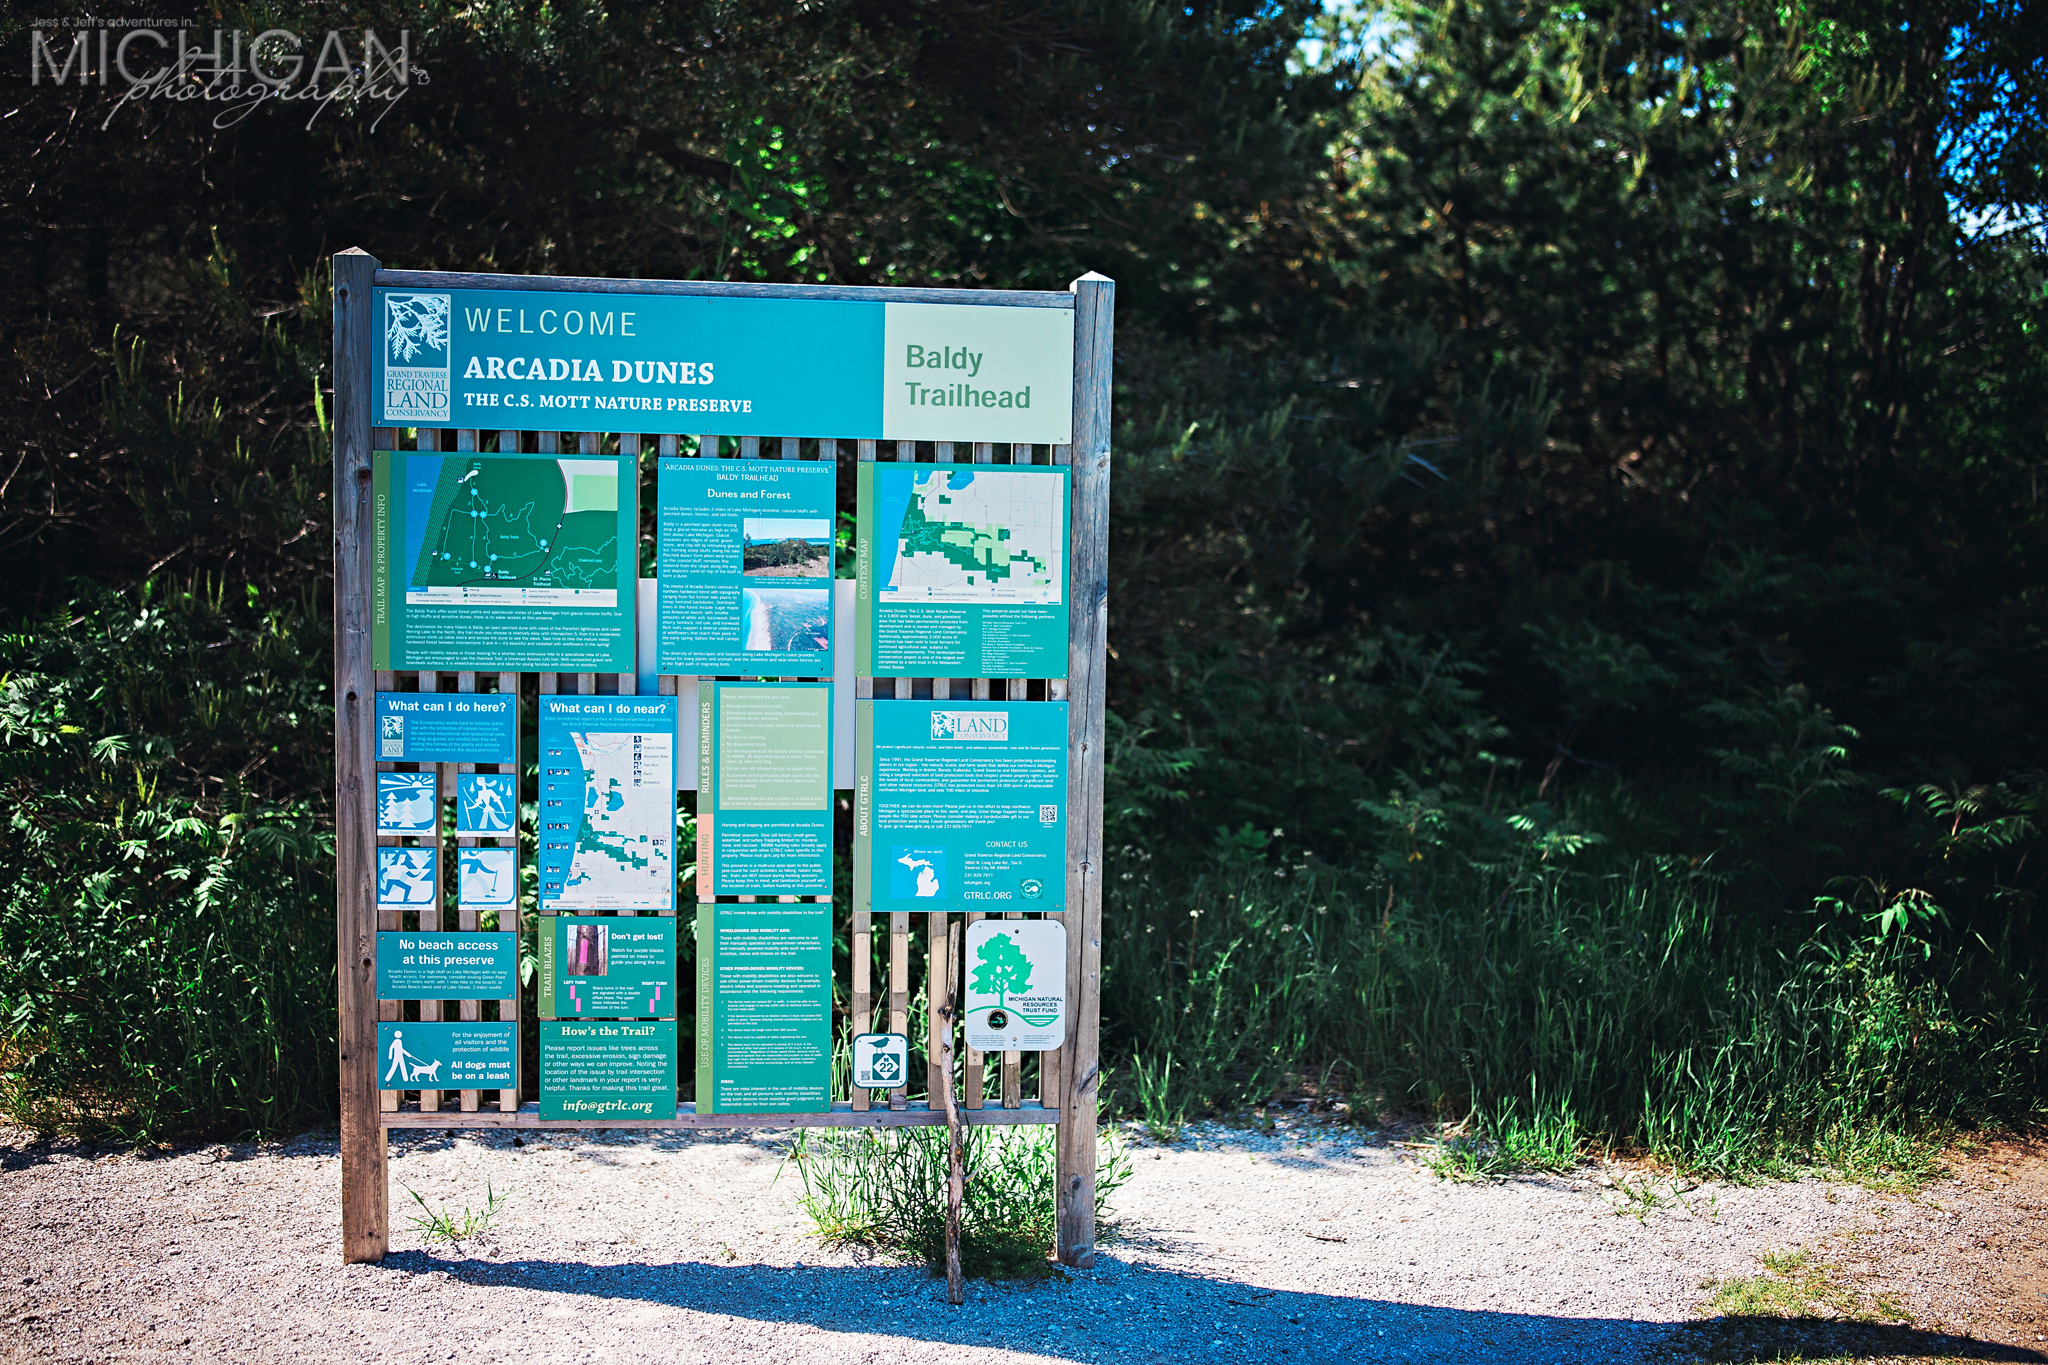 The main sign at the Baldy Trailhead